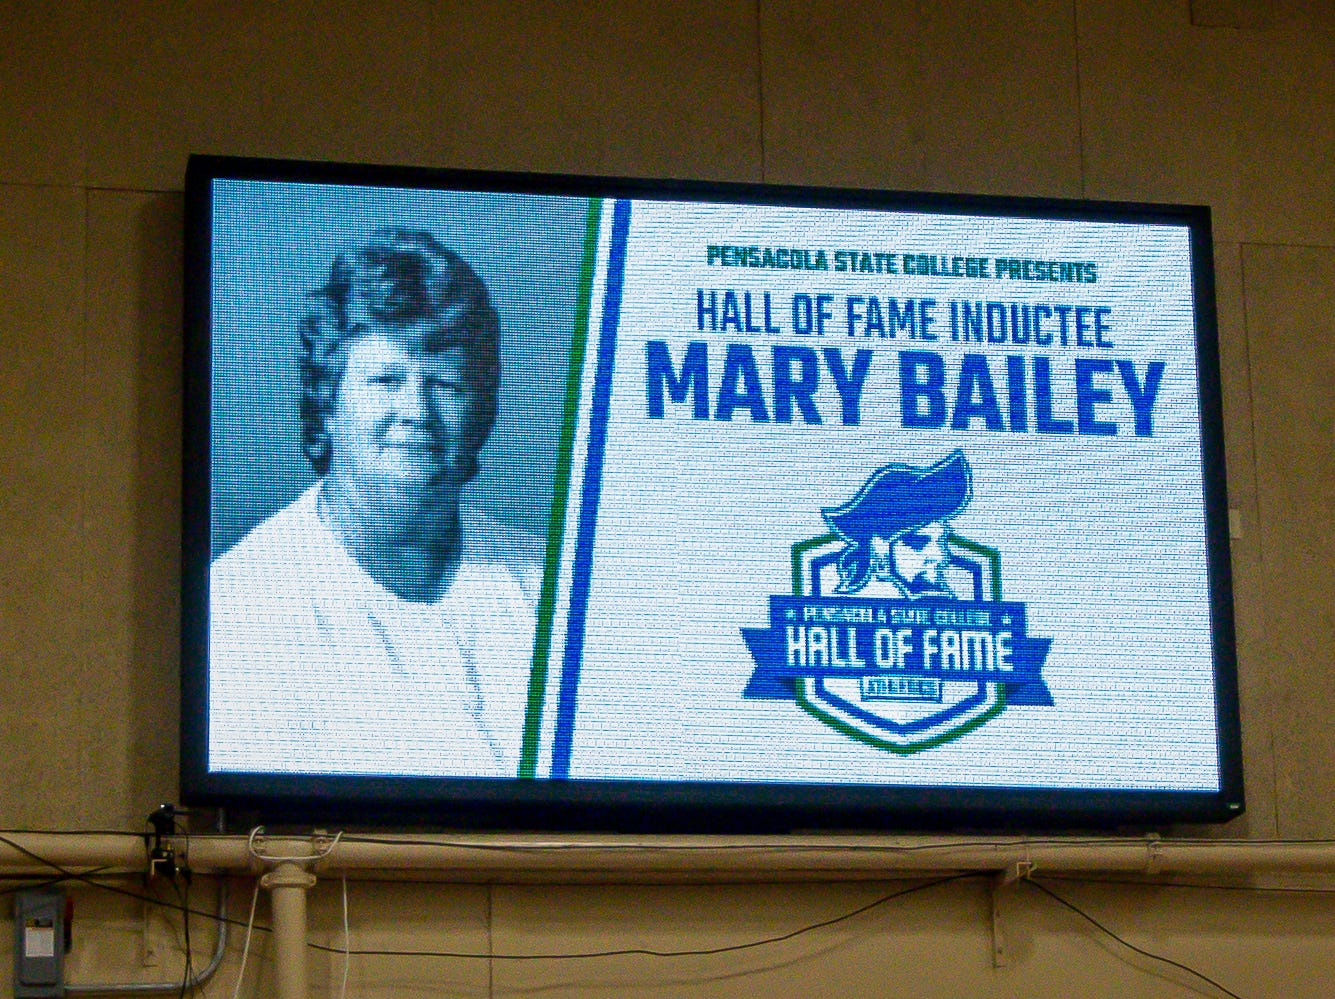 Mary Bailey is posthumously inducted into Pensacola State College's inaugural Athletics Hall of Fame induction ceremony on Saturday, February 16, 2019, in the Hartsell Arena on the main campus. A 1967 PSC graduate, she was the college's first head softball coach from 1982-94. In 1988, her team won the NJCAA Div. I championship and she also was named the National Softball Coach of the year.